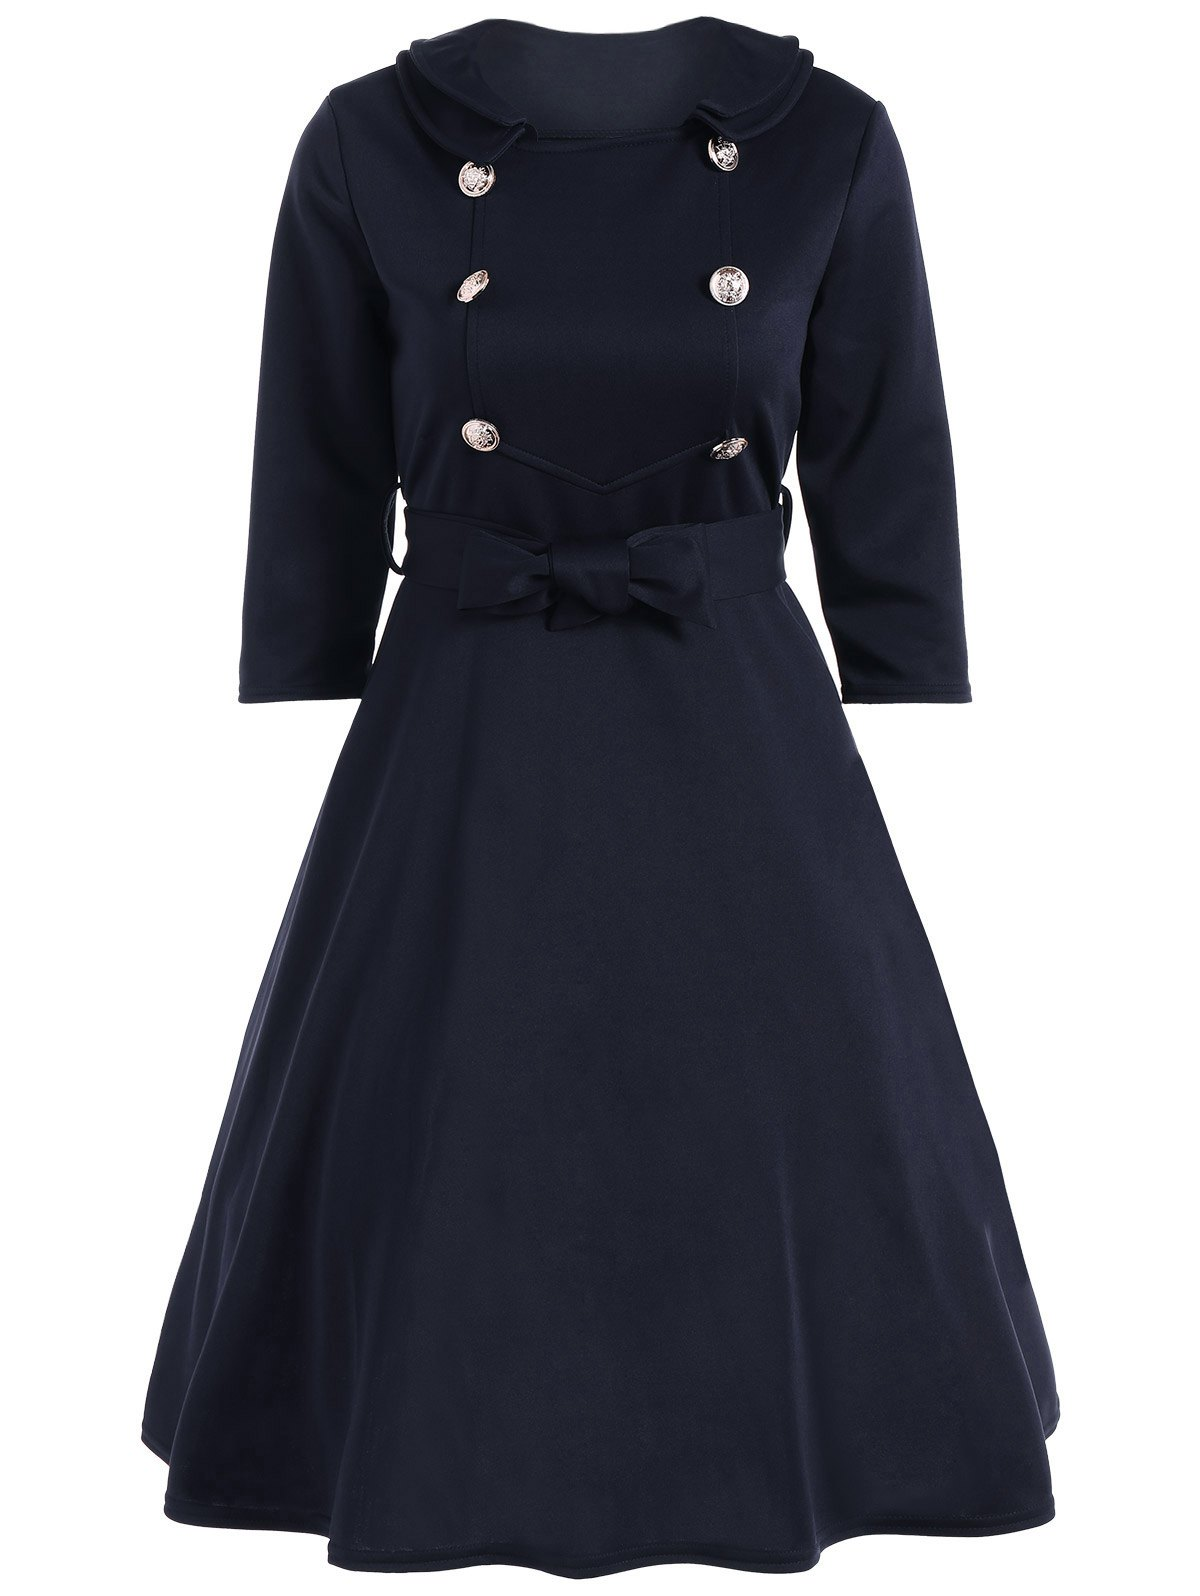 Bowknot Belted Swing Dress - CADETBLUE S